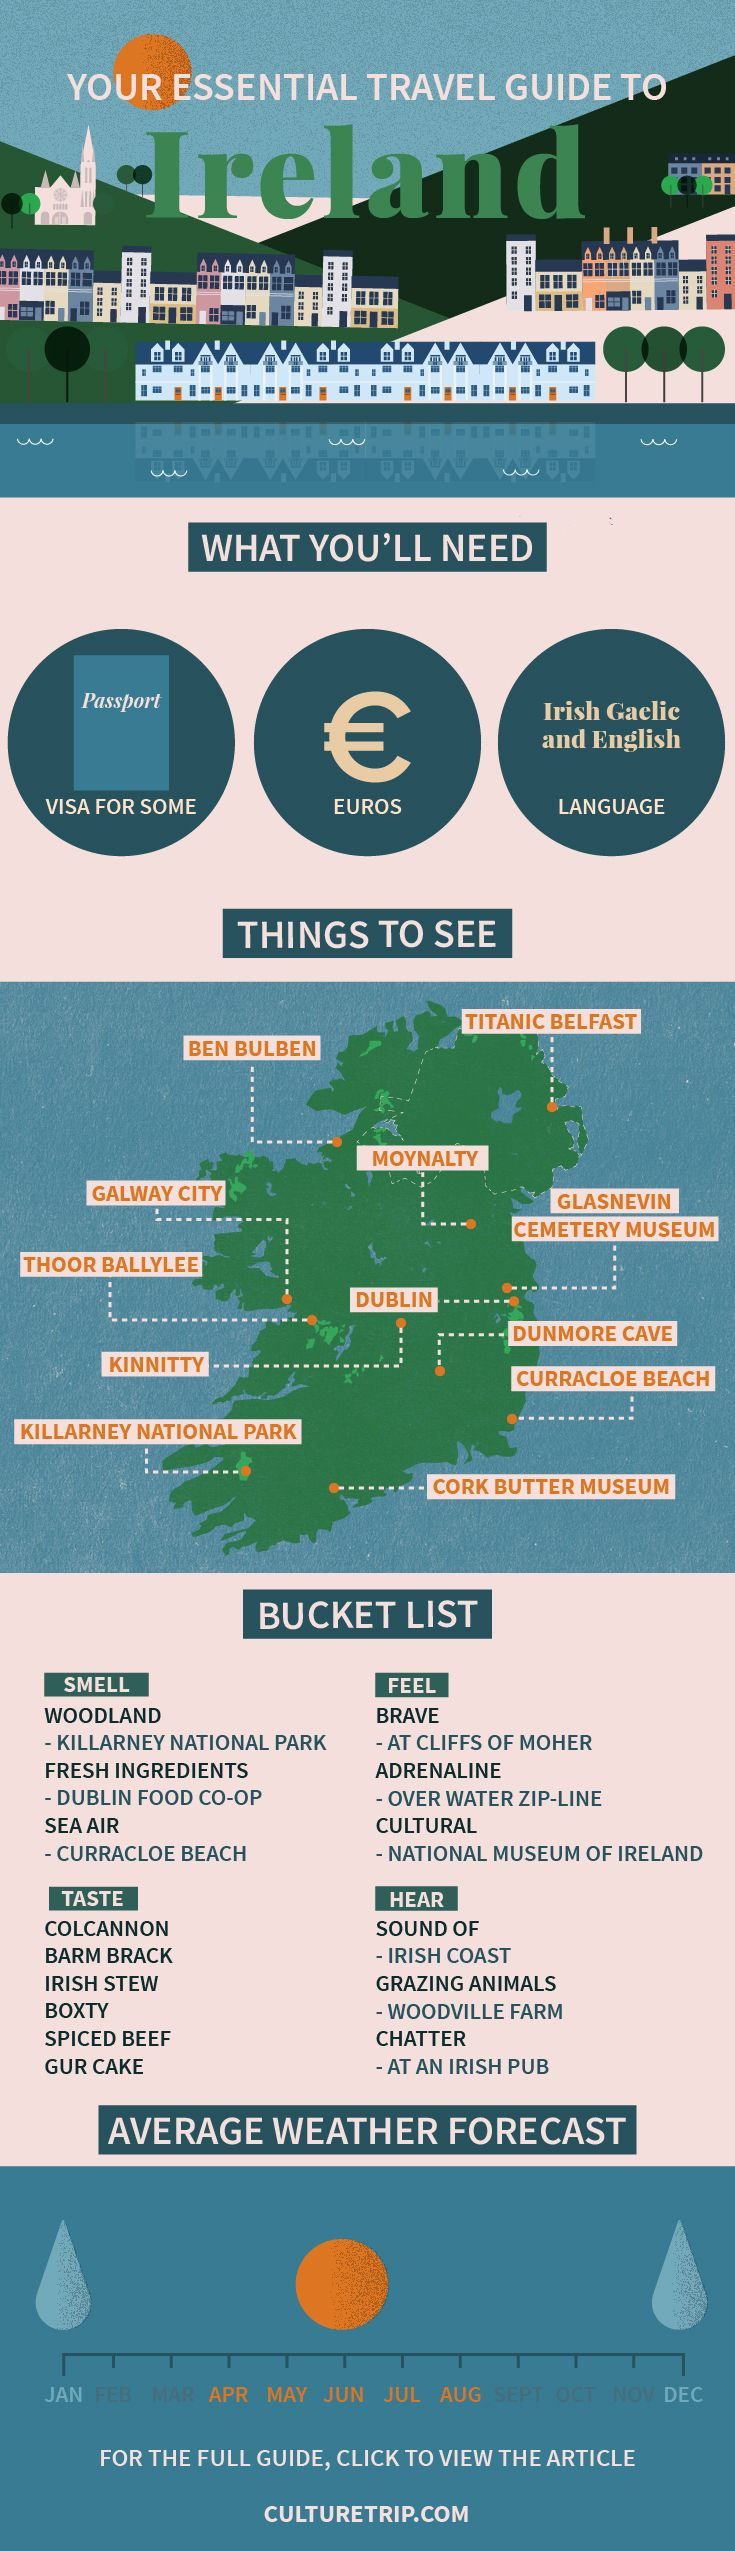 The Essential Travel Guide to Ireland (Infographic) | Ireland, food, adventure, Dublin, Cork, Castle, Countryside, weekend, city